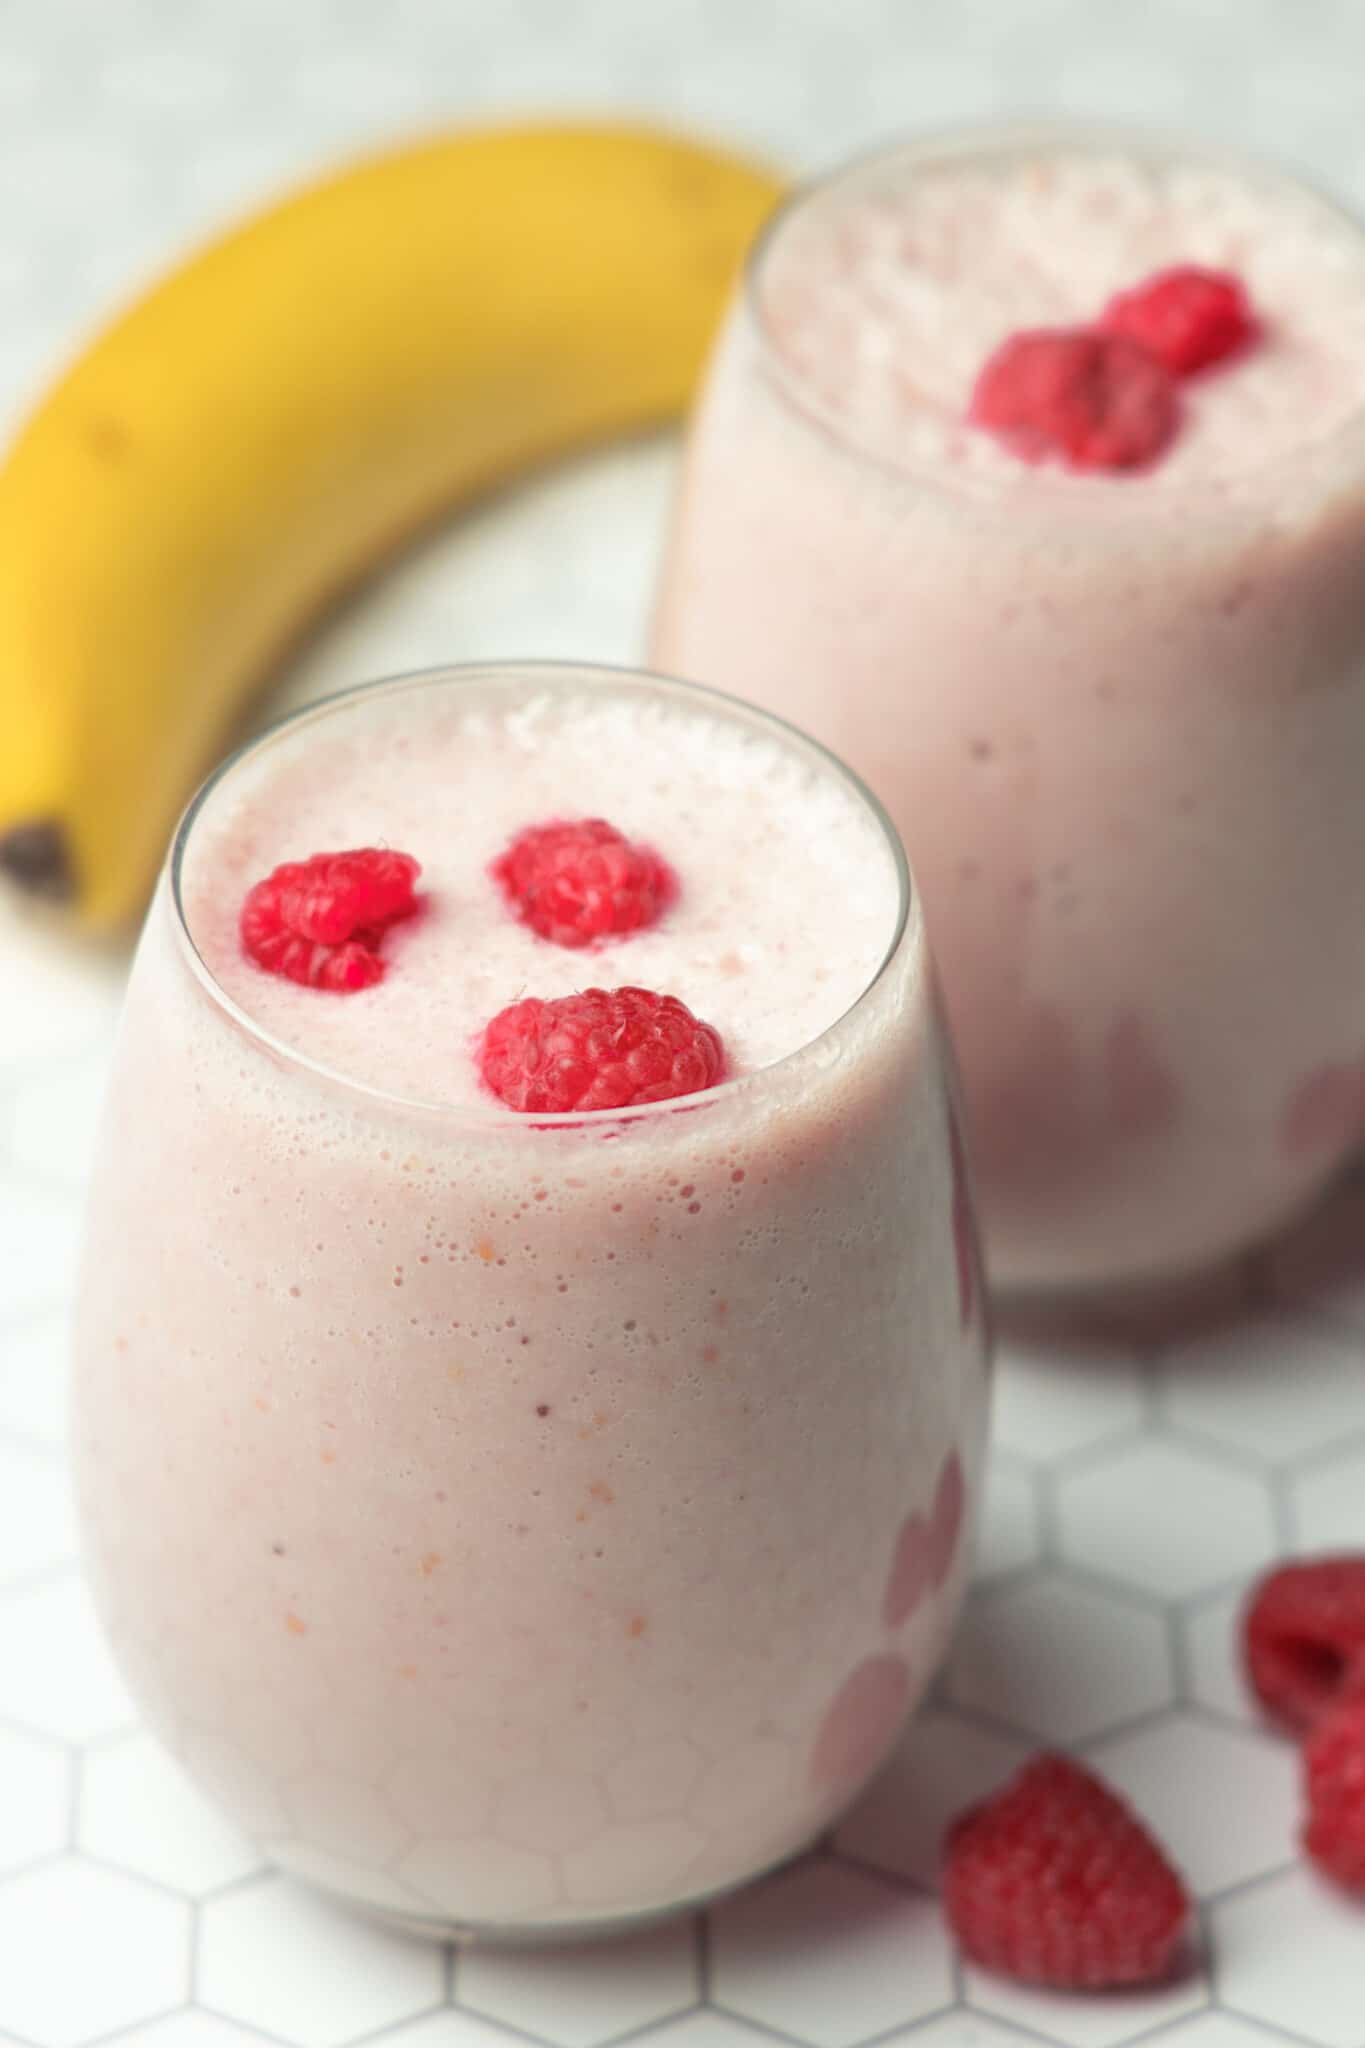 photo of two glasses of banana raspberry smoothies on a white tiled background with a banana and raspberries